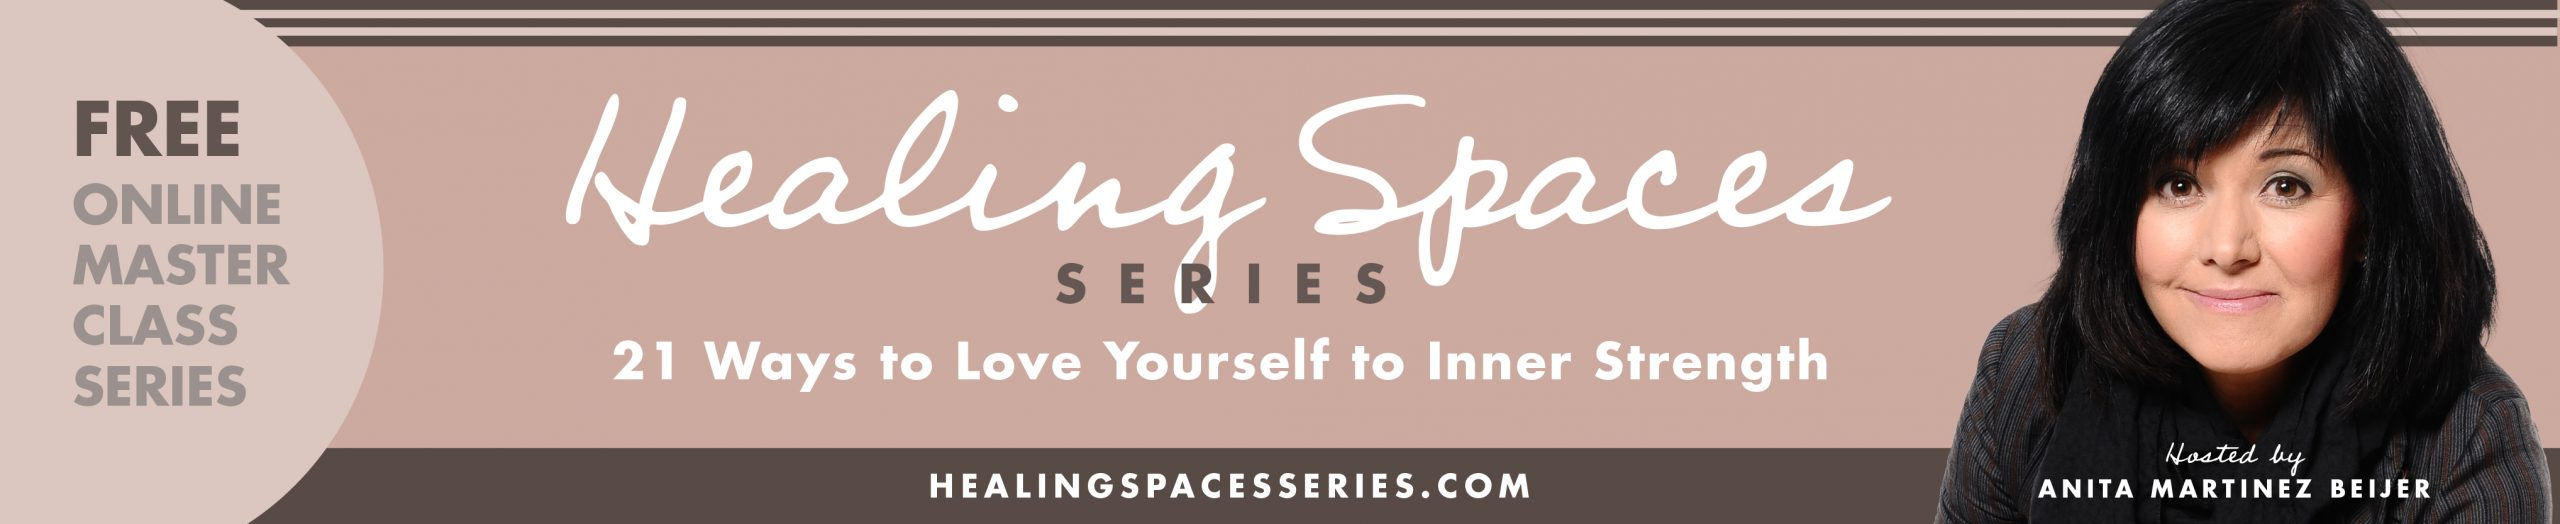 Healing Spaces Series